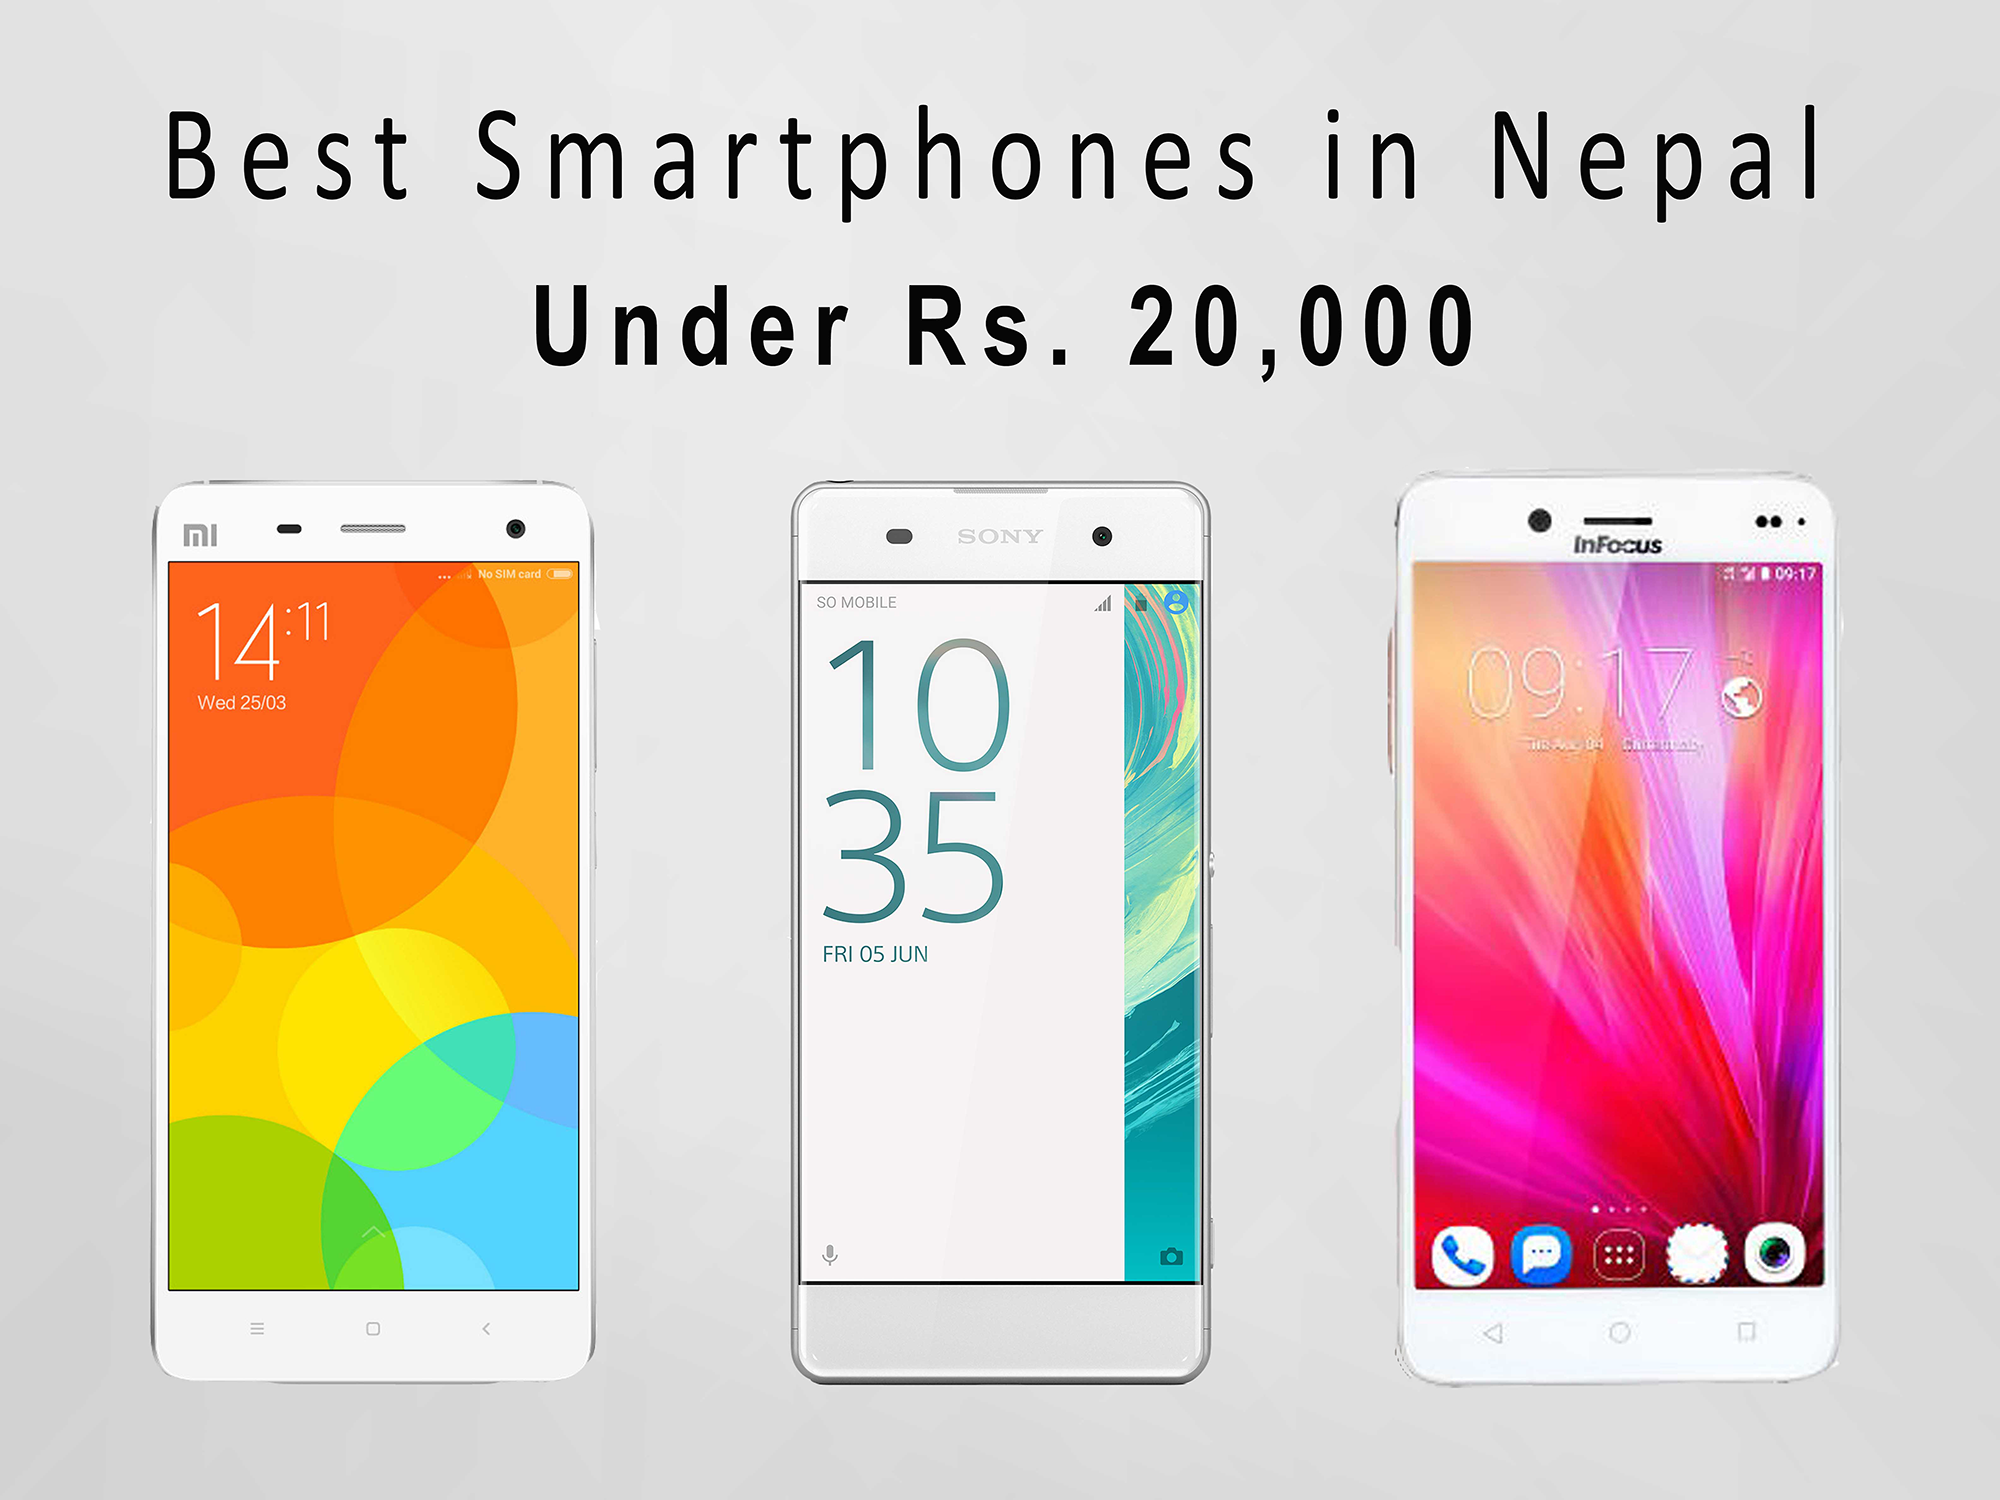 best phones under rs.20,000 in nepal